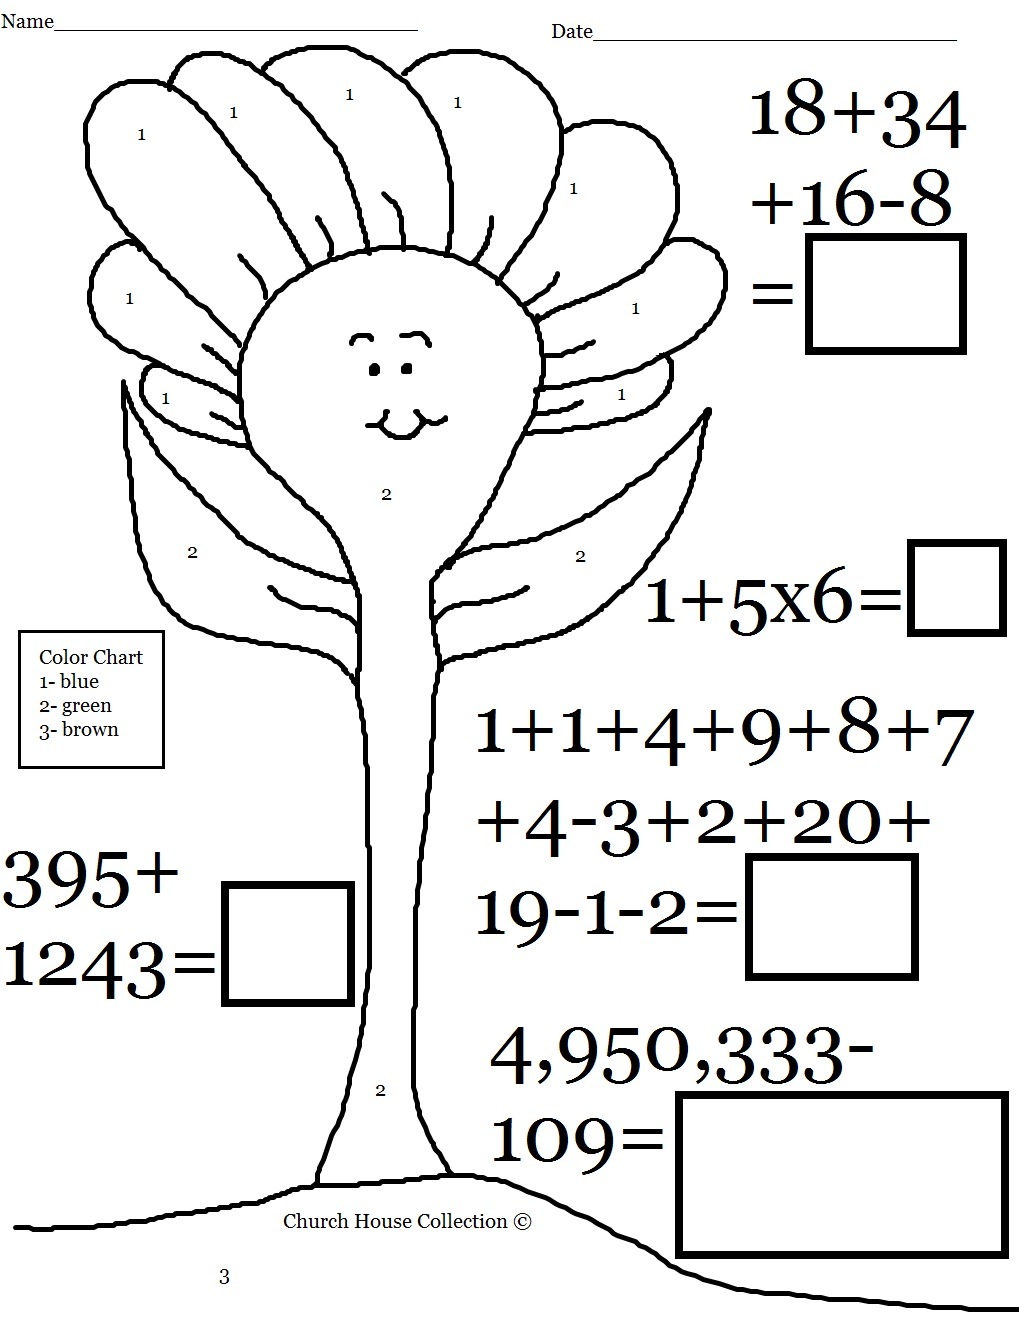 Worksheet 8001035 Printable Maths Worksheets for Kids The Math – Fun Worksheets for Kids